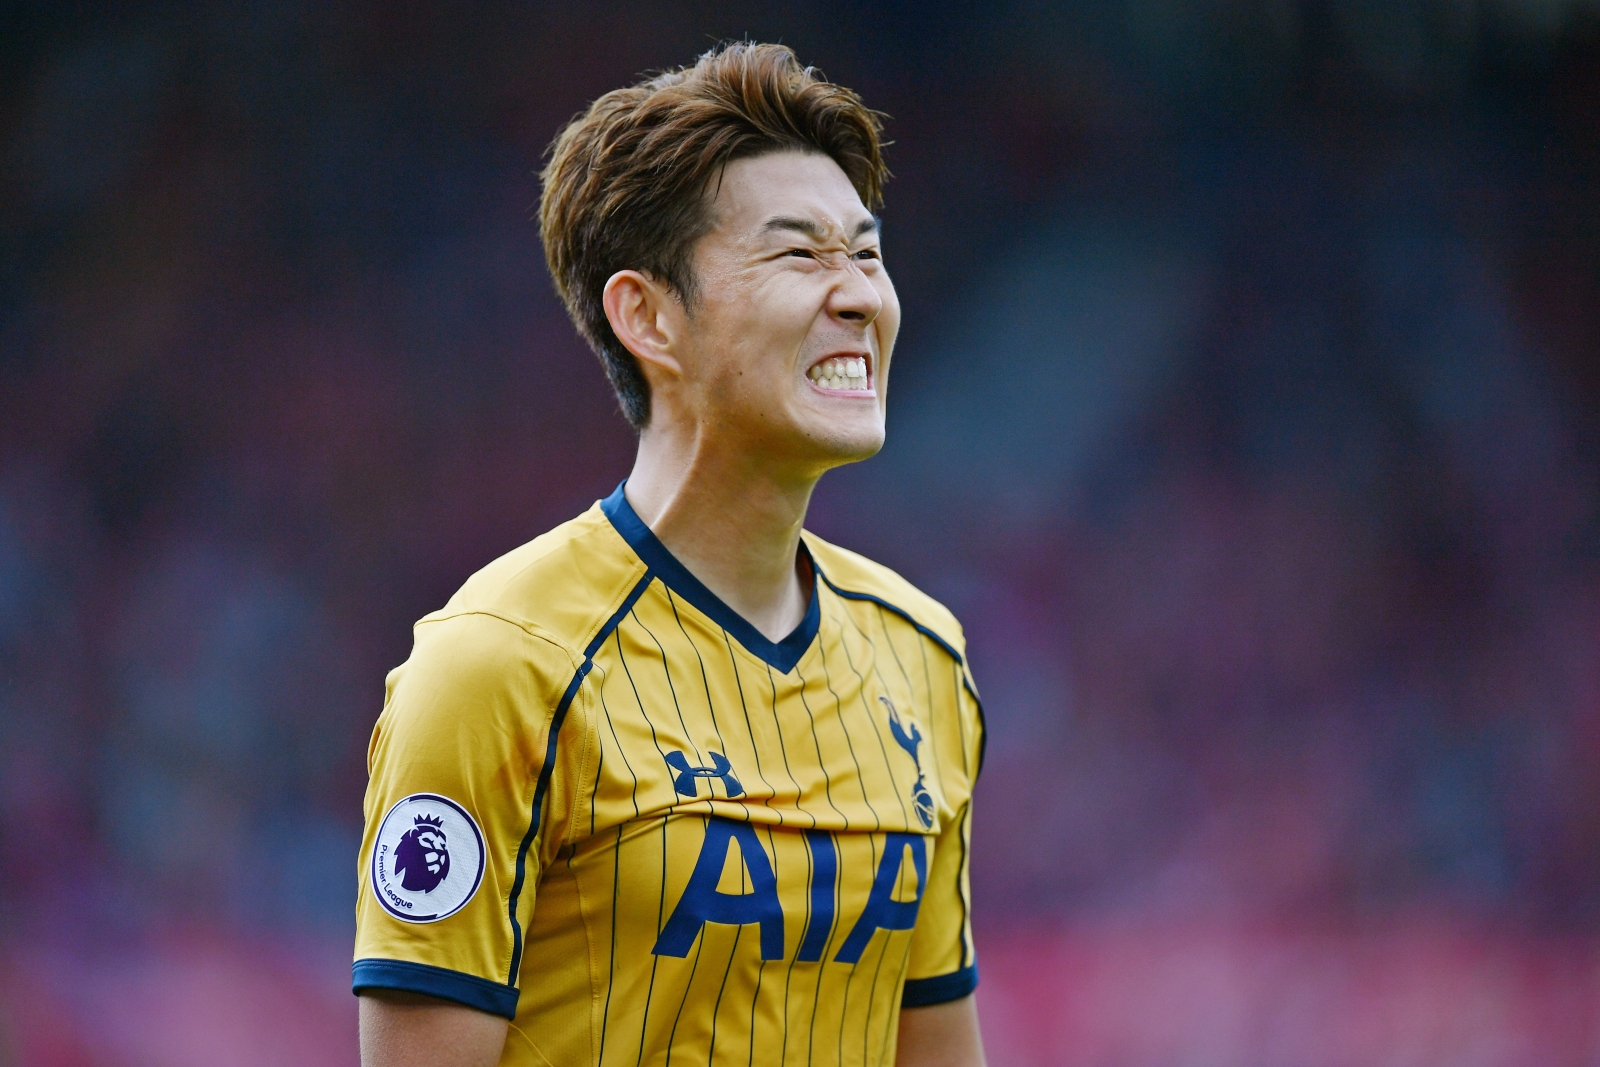 Tottenham transfer news: Son Heung-min thrilled at being